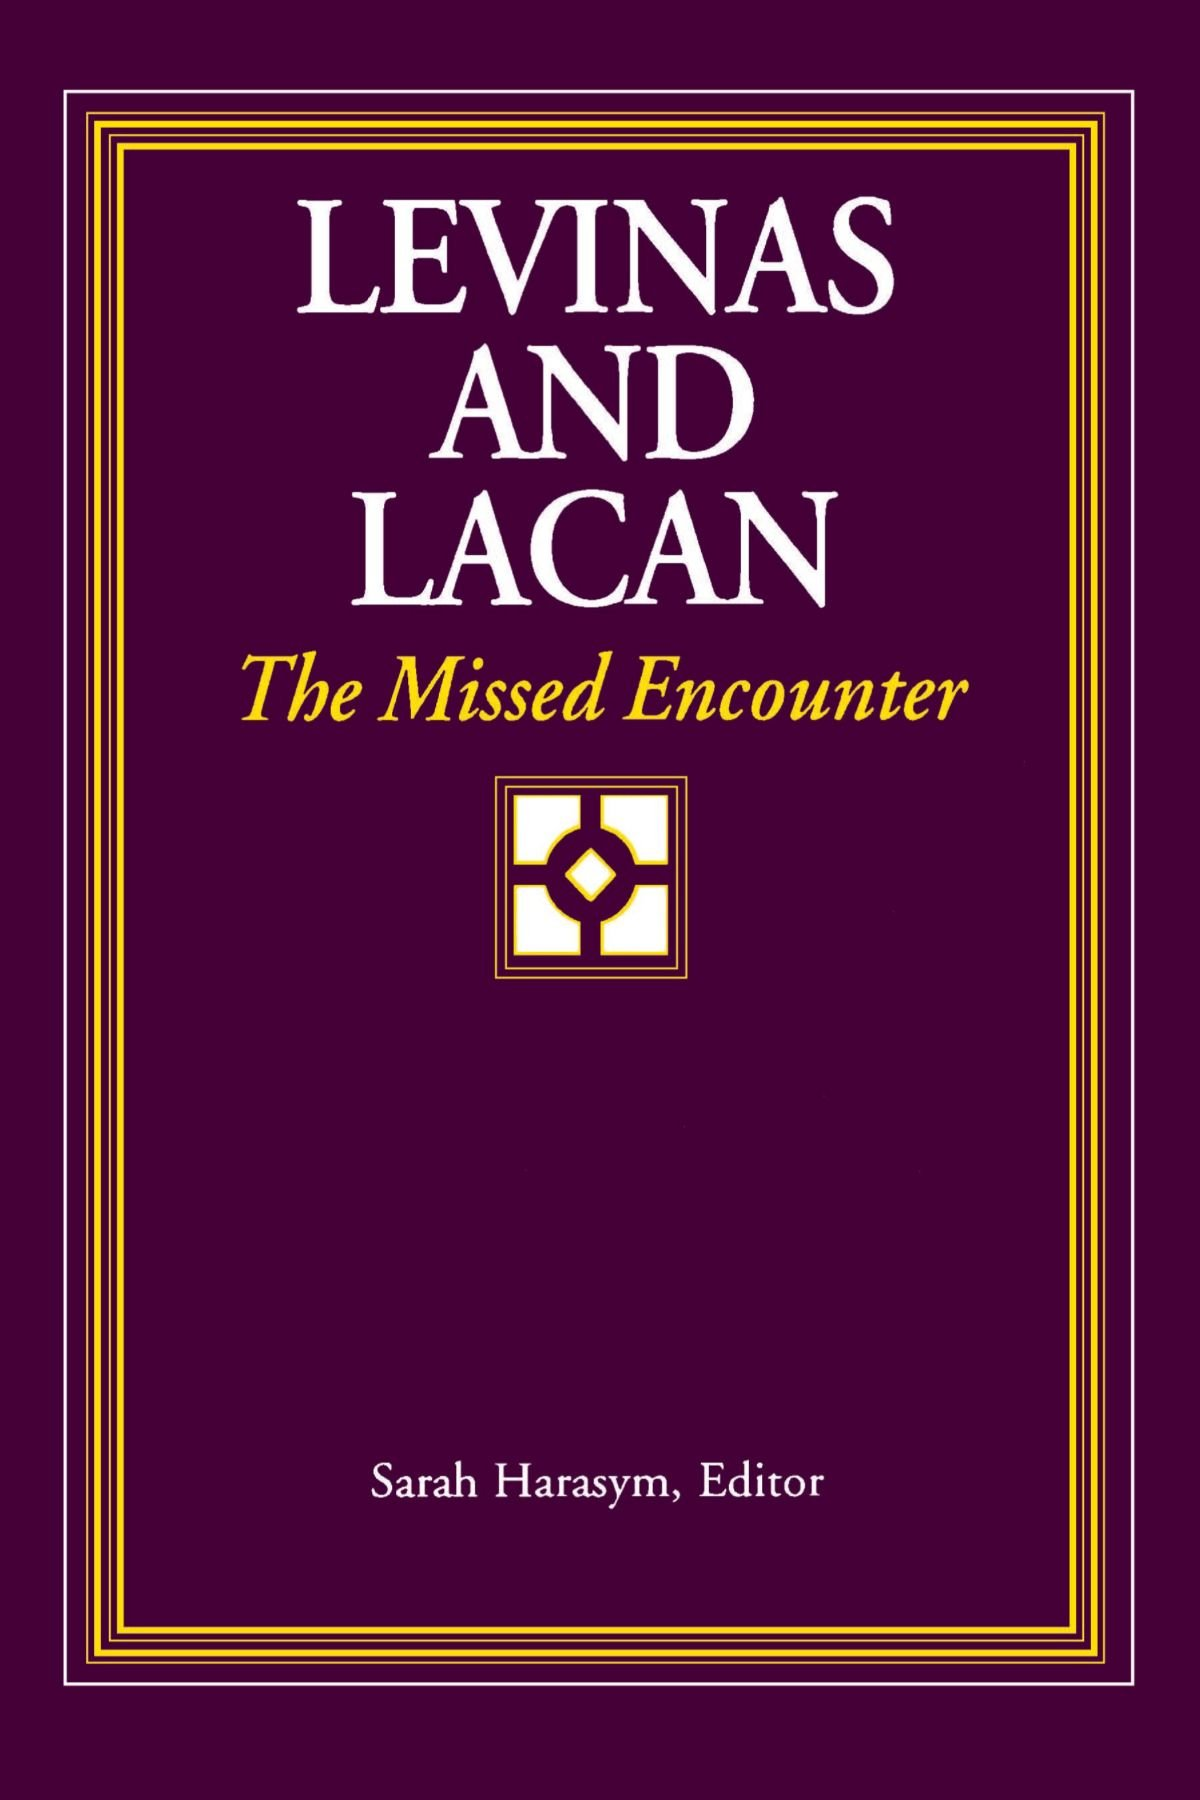 Levinas and lacan the missed encounter suny series psychoanalysis levinas and lacan the missed encounter suny series psychoanalysis culture sarah harasym 9780791439609 amazon books fandeluxe Gallery